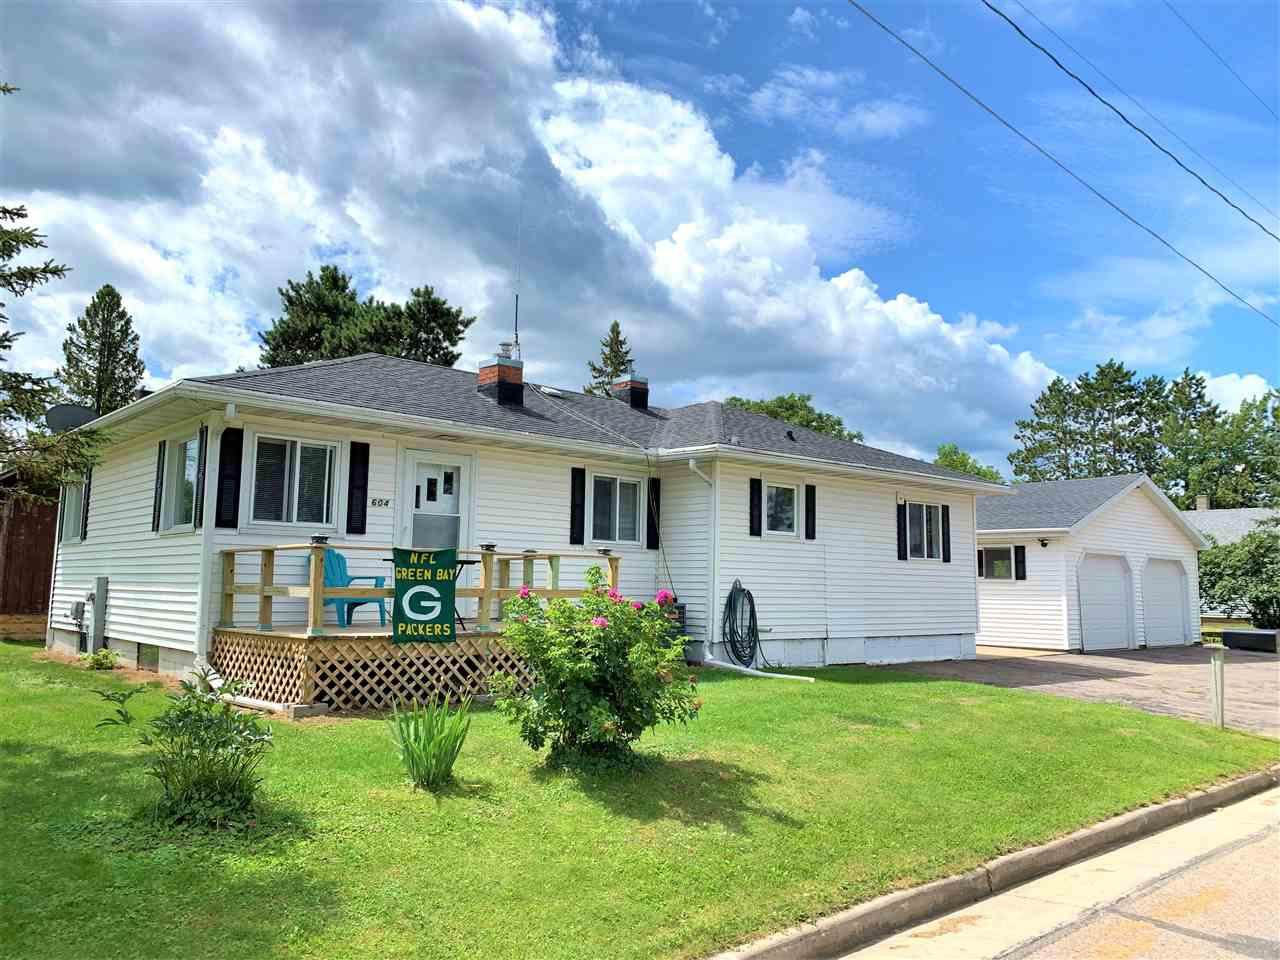 Why throw money away renting when you can buy!  Very nicely maintained, move in ready home for your consideration!  Beautiful curb appeal with manicured lawn, rose bushes and lilacs.  Driveway is all concrete that extends in between the house and the garage.  It makes for easy clearing of snow in the winter and limits tracking in dirt during the summer.  There is also ample parking.  The over sized 2 stall garage is insulated and heated, has work area, well lighted and access to a sand pit well for water.,Patio area with electric canopy between the garage and home makes a perfect area be outside yet out of sun, whether it be coffee in the morning, midday break or relaxing in the evening.  Step inside and you will enjoy main level laundry, 2 bedrooms on opposite ends of the home and main floor bath.  The bathroom has a walk-in tub with whirlpool jets and shower.  There are grab bars for safety. Nice sized living room with a gas fireplace, perfect for those Wisconsin winter nights!  New front deck off the living room. Electrical panel and wiring with 200 amp service updated in 2017 along with a new furnace and water heater.  Enjoy the central air in the summer!  There is also an additional laundry hook up in the lower level.  The basement is clean and dry!  This lovely home has so much to offer its new owners!  Don't wait to schedule your private showing today!